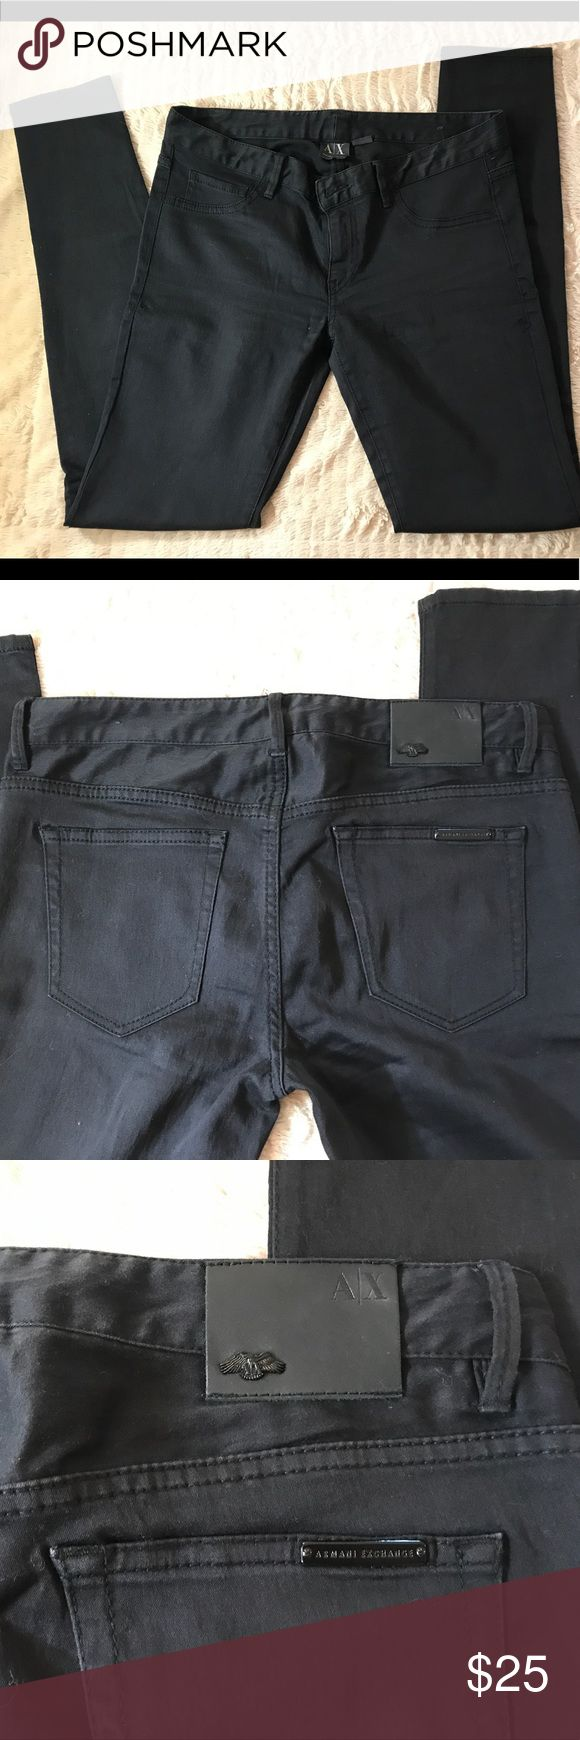 Armani Exchange Leggings👖 (jeans kind) Size 6 Modern and really comfy , used once Armani Exchange Pants. I used them for my Birthday party . Excellent condition. No flaws . Size 6 (fits a size 25/26) I usually use size 26 and these fit great on me :) feel free to make any offers A/X Armani Exchange Pants Leggings